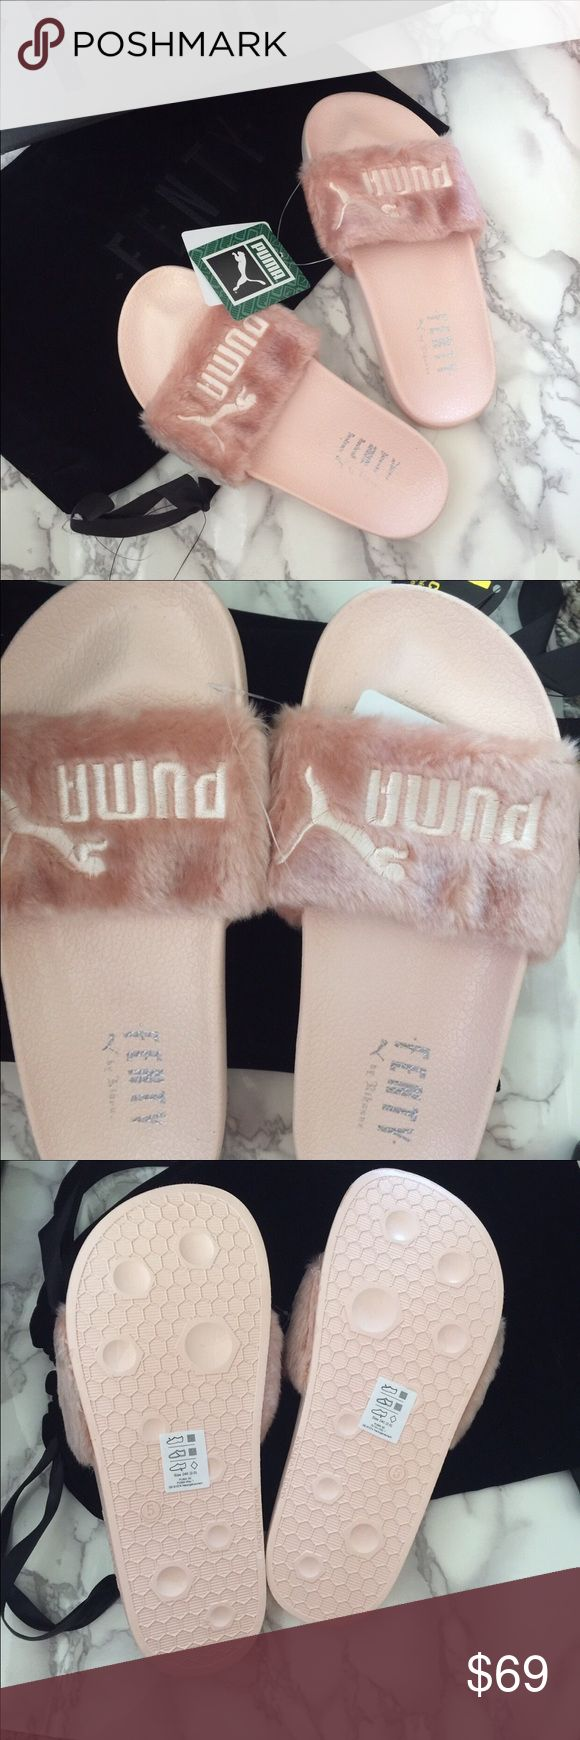 PINK PUMA RIHANNA FENTY SLIDES Comes with DUSTBAG n BOX Puma Shoes Slippers